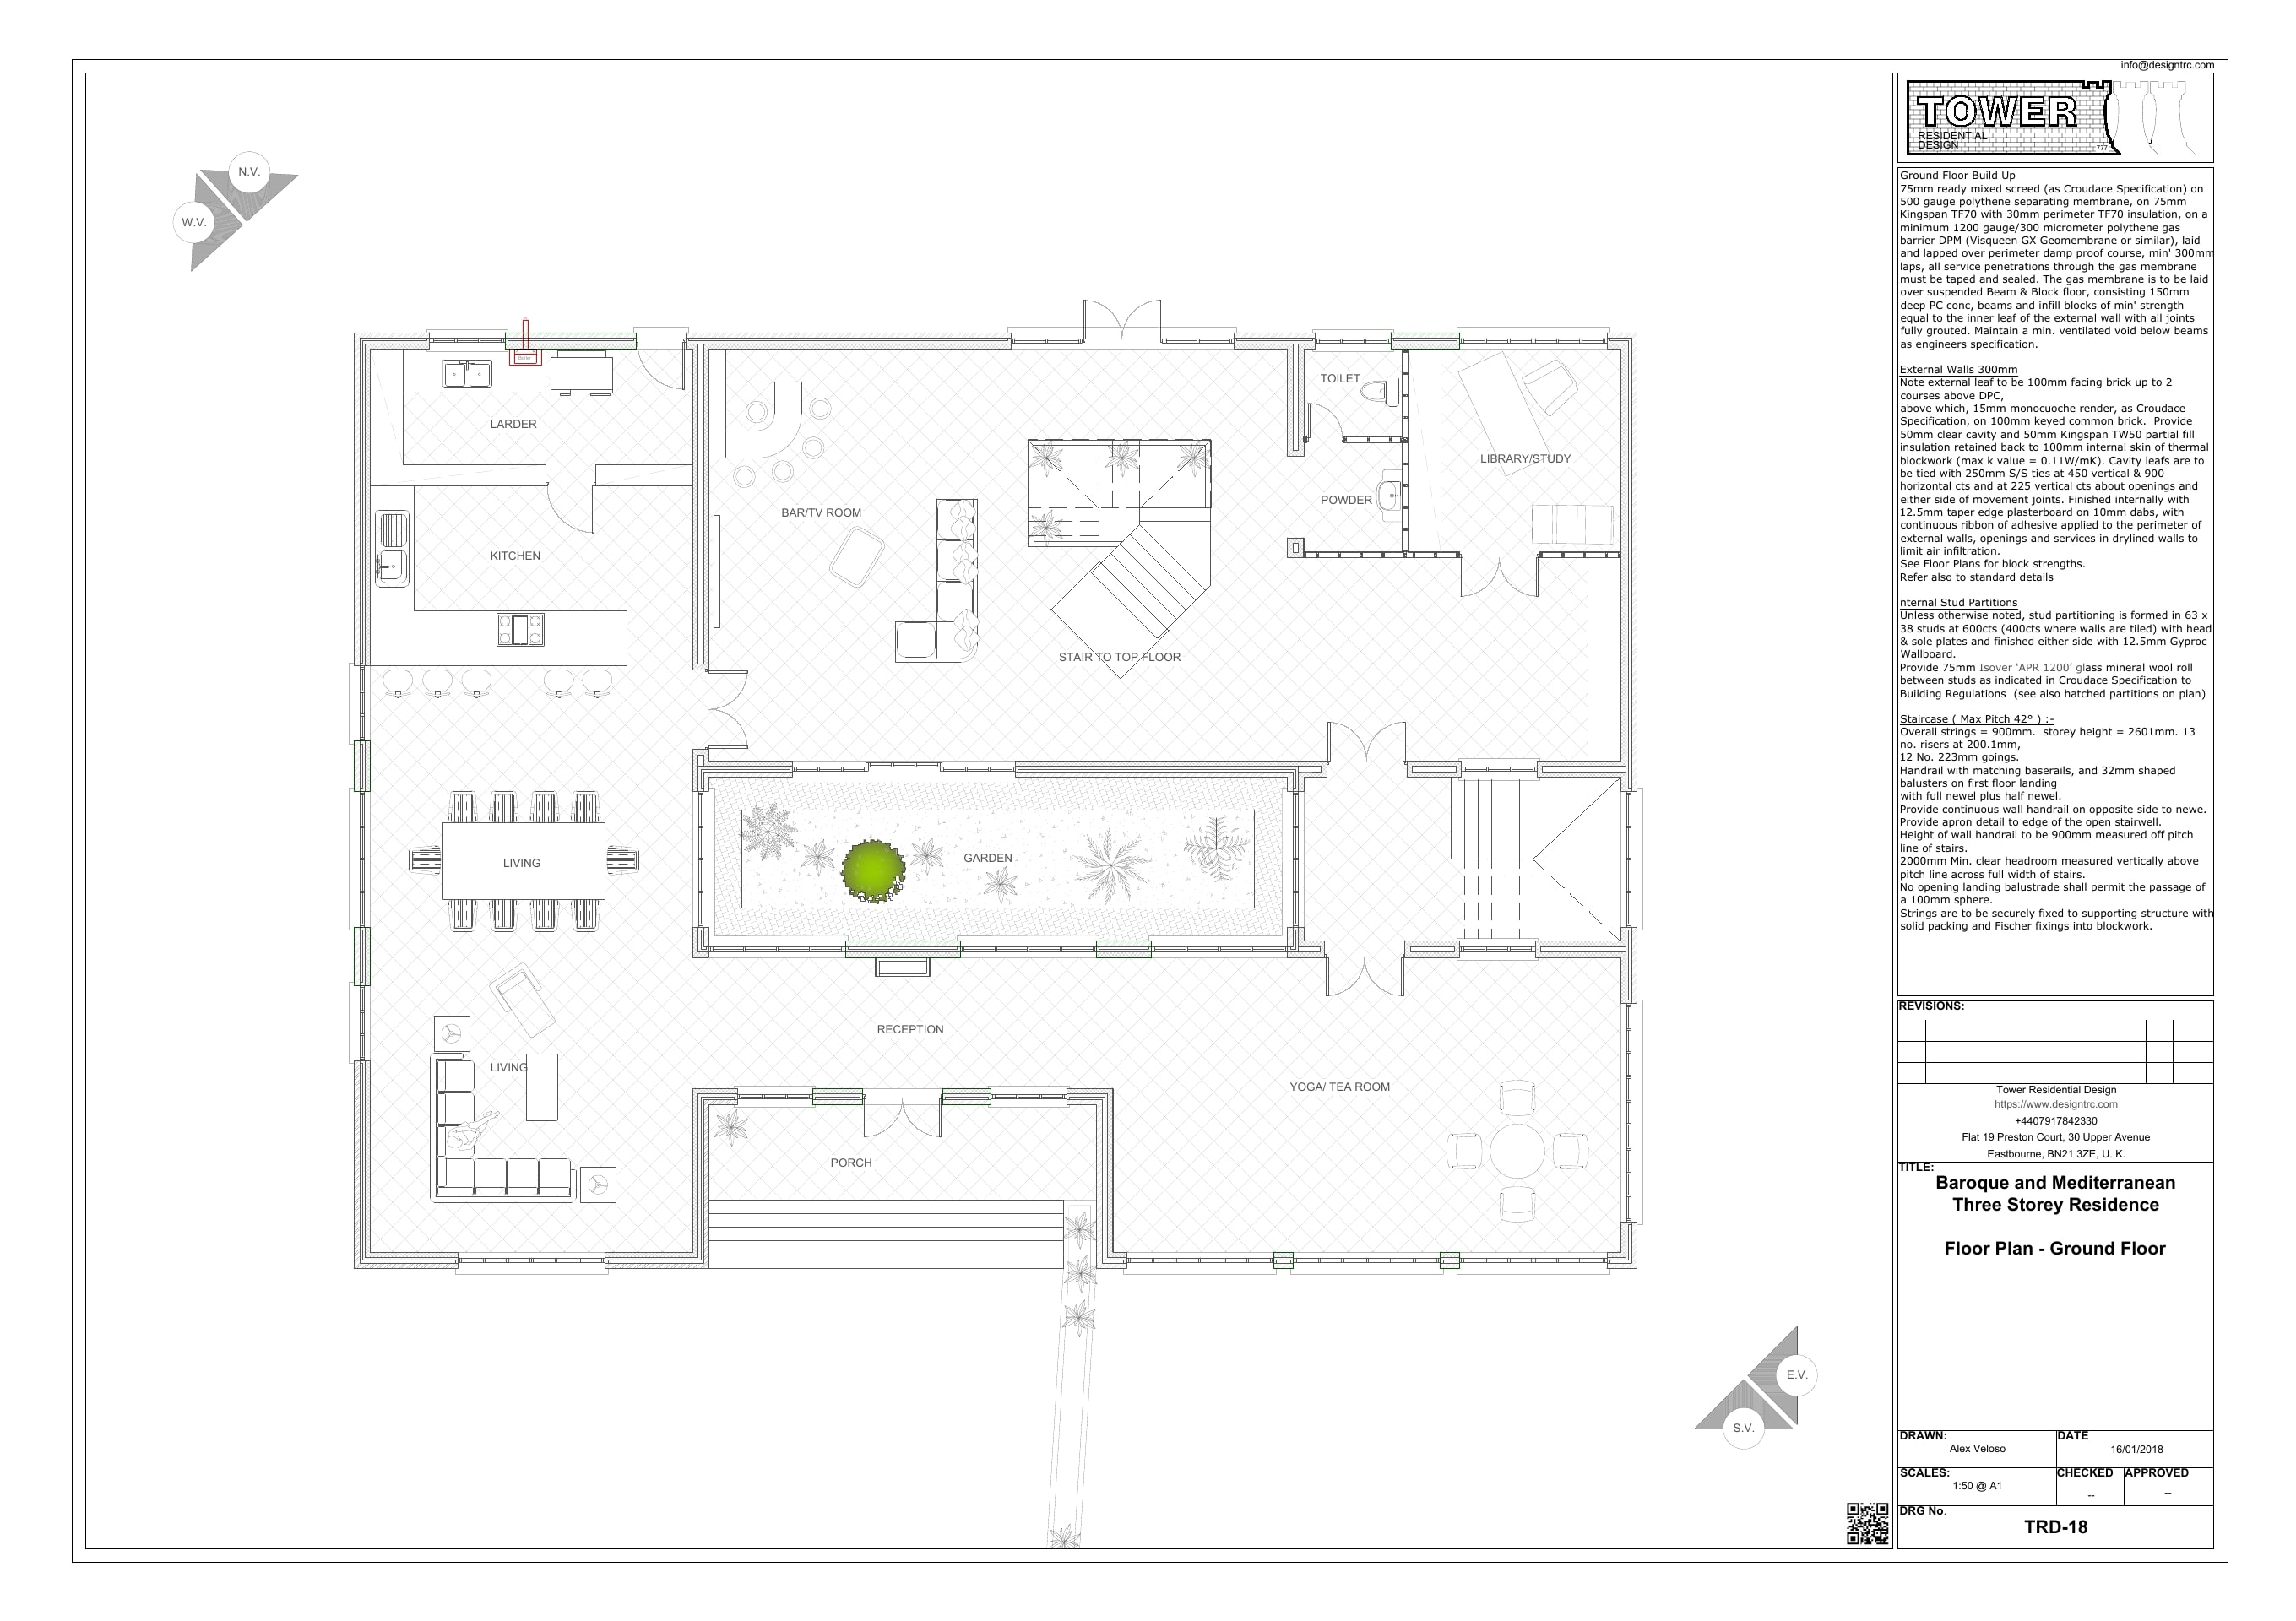 Baroque & Mediterranean- Ground Floor Plan